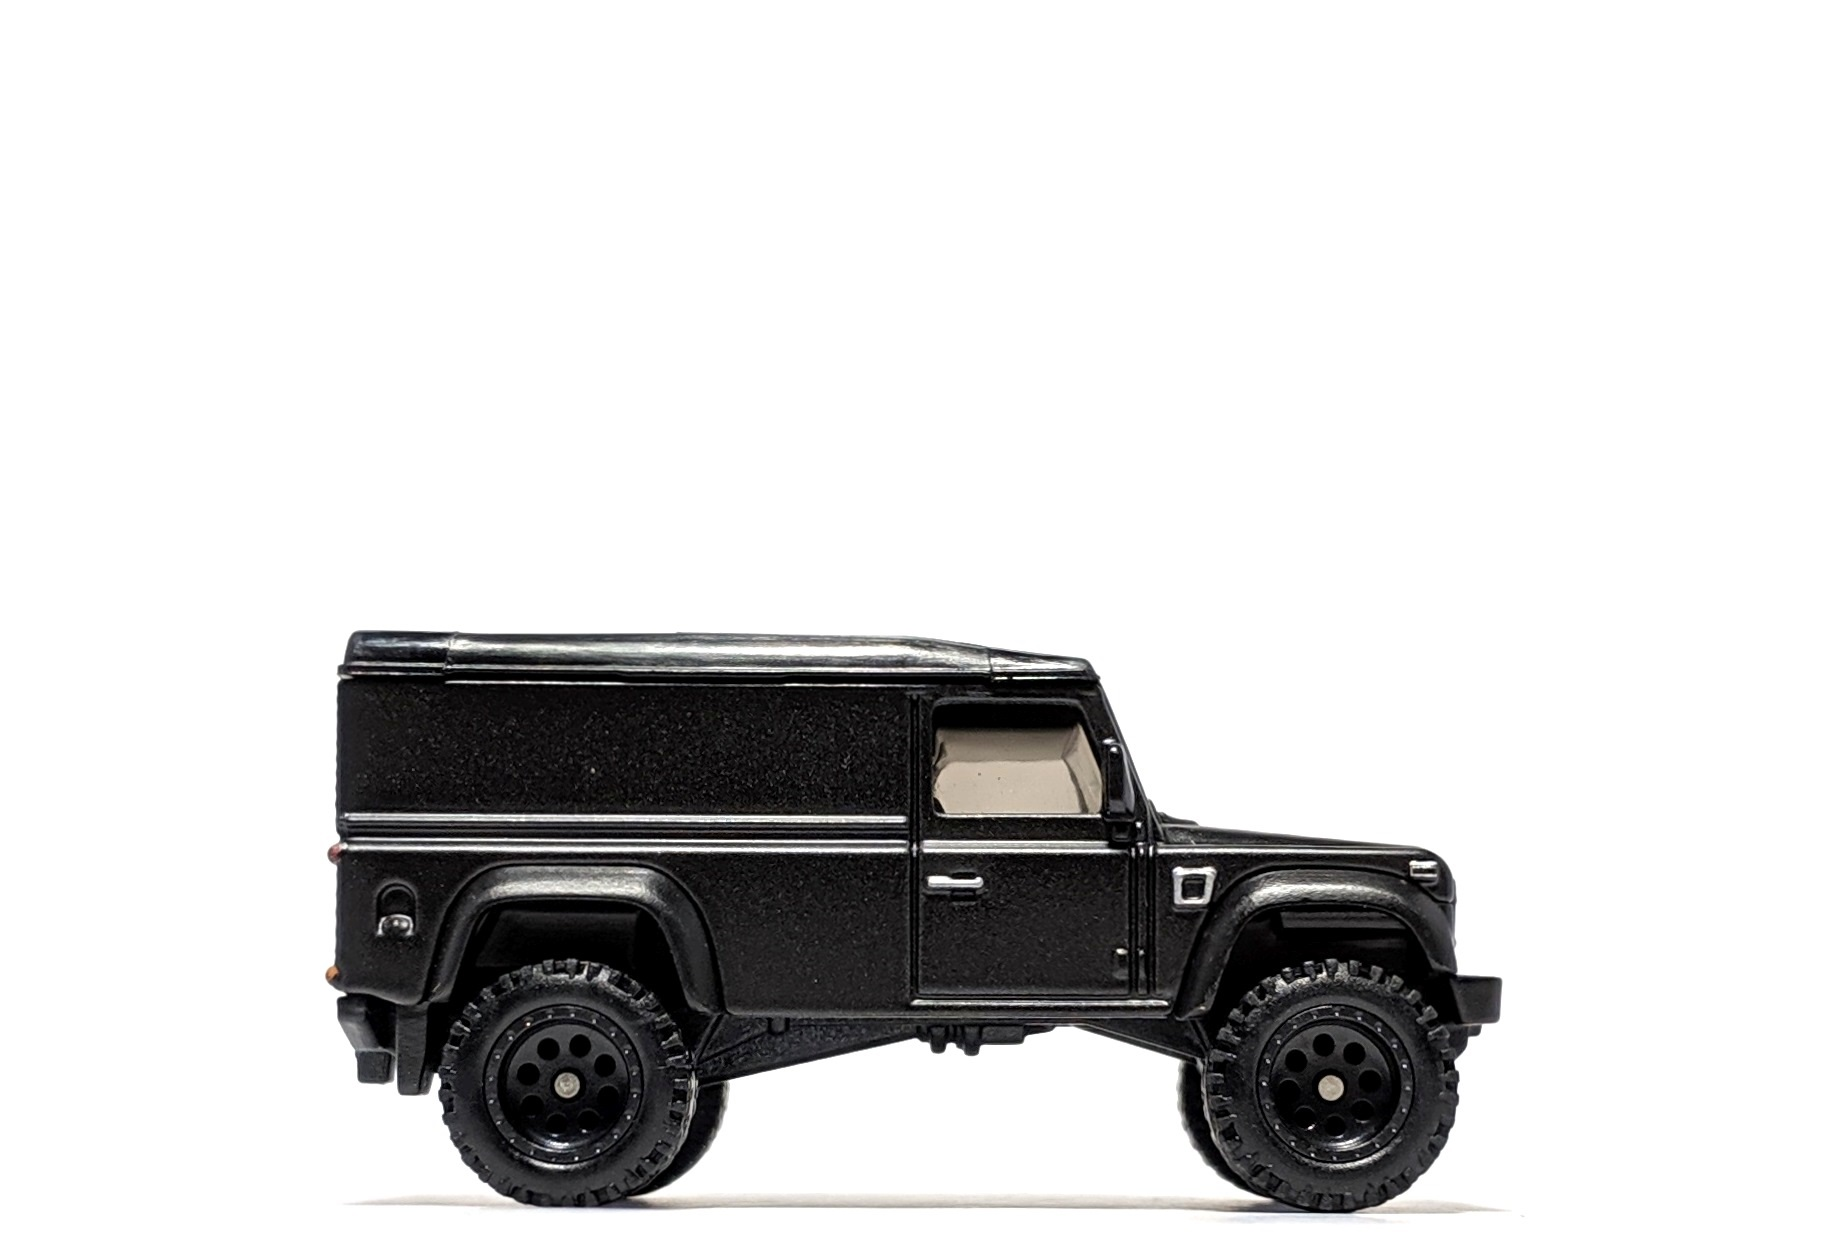 Land Rover Defender 110 Hard Top, by Hot Wheels (Fast & Furious: Furious Off-Road)